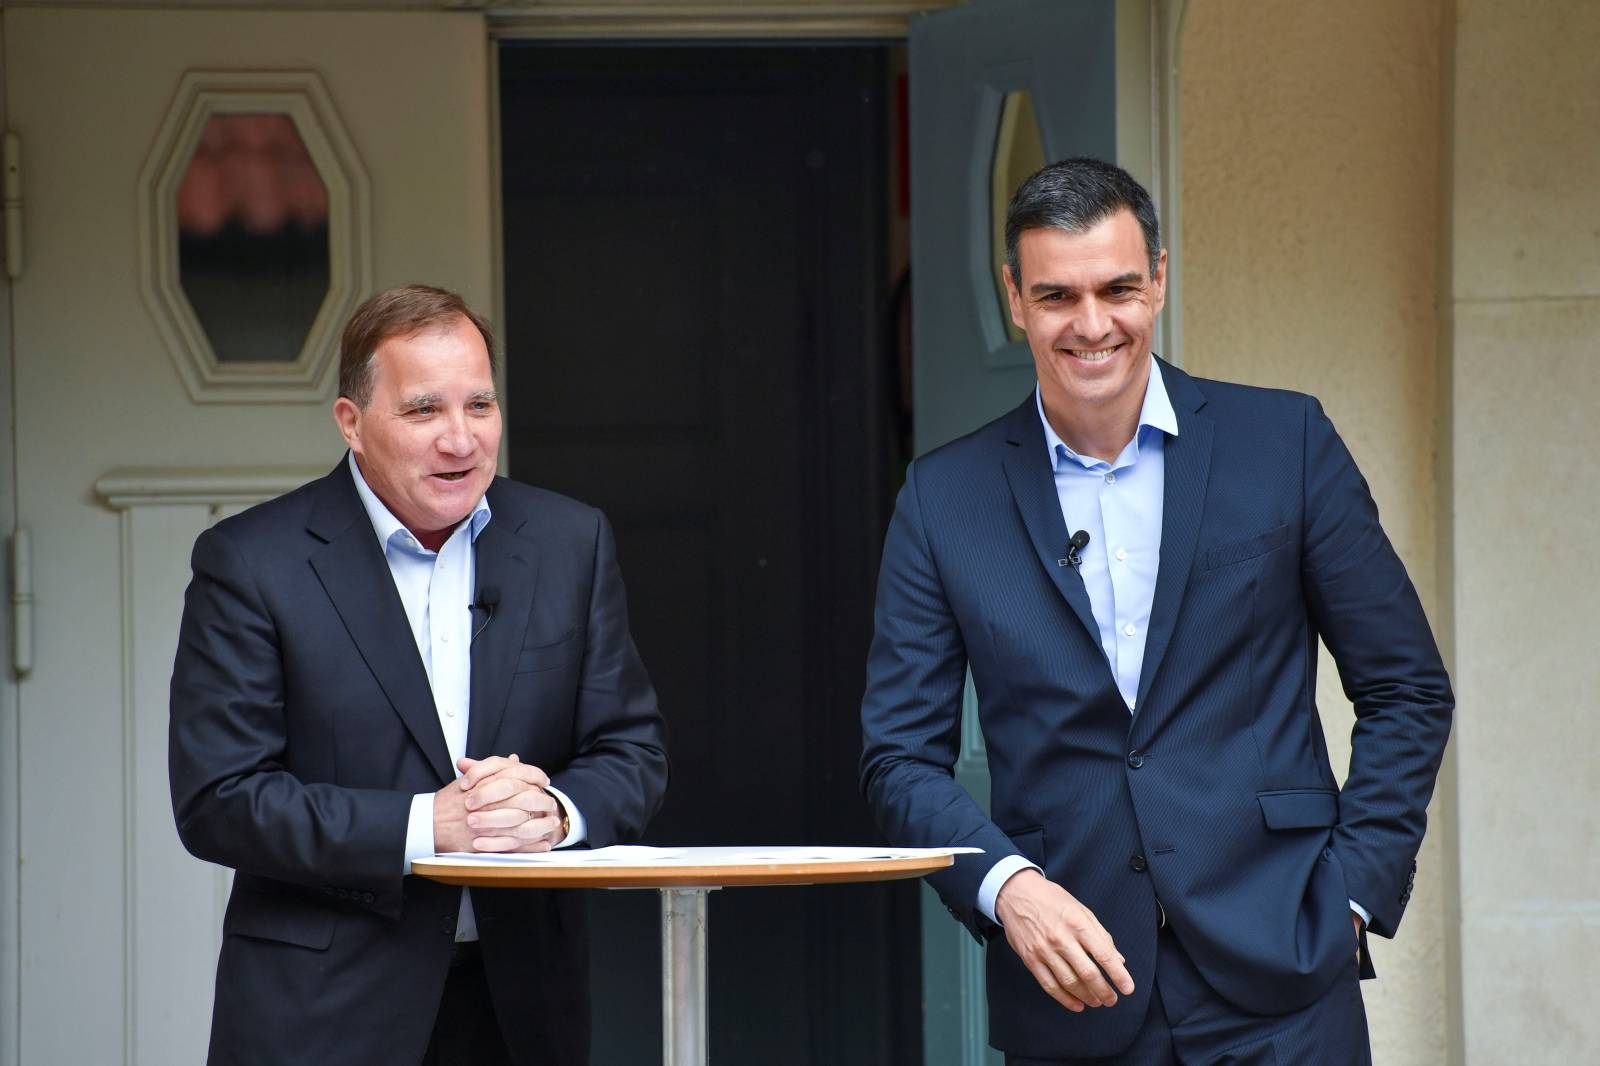 Spanish PM Sanchez and Sweden's PM Lofven hold a joint news conference in Harpsund